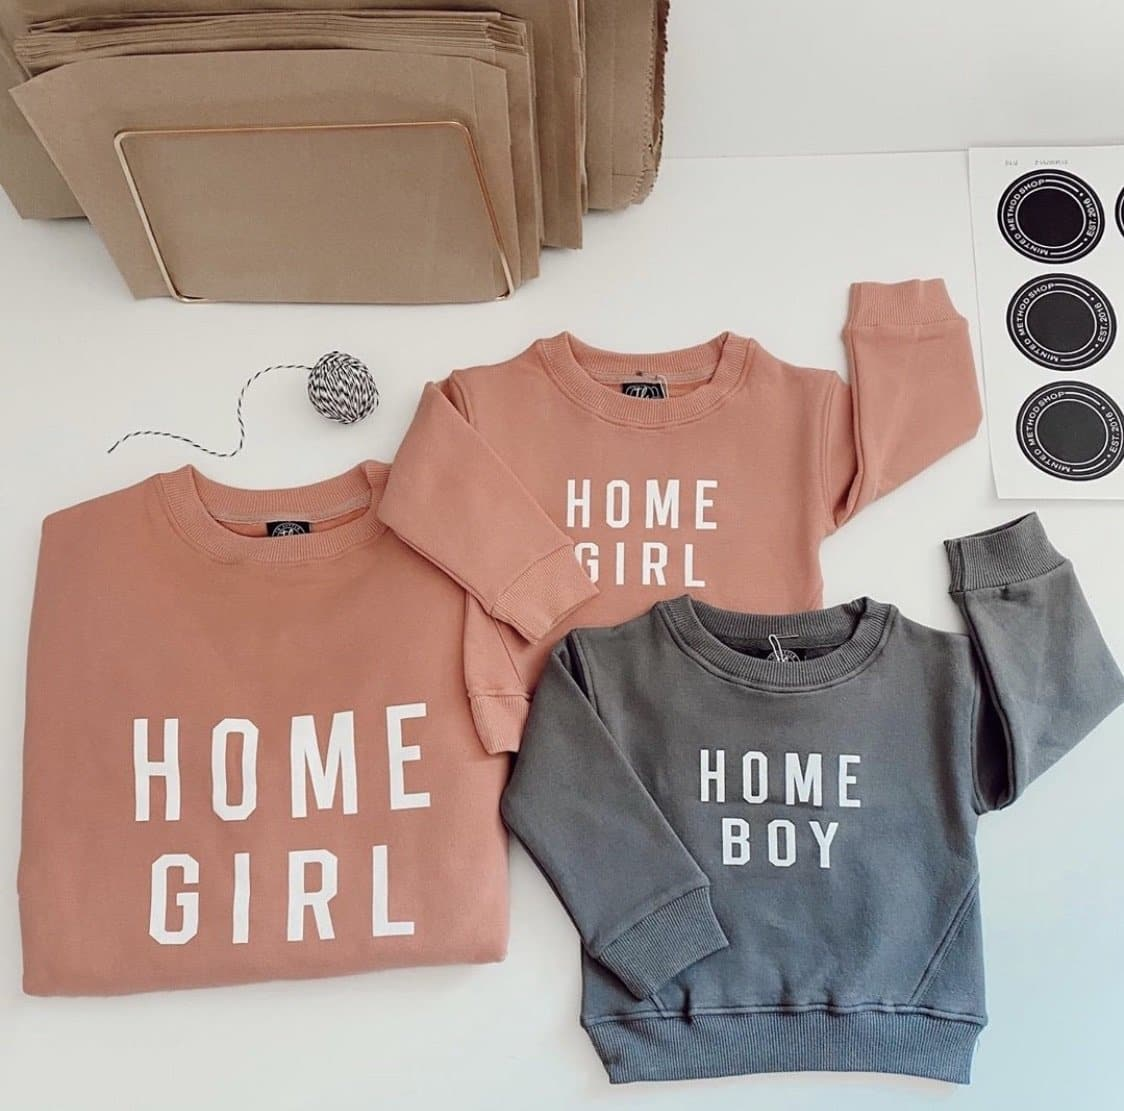 Home Girl and Home Boy Sweatshirts